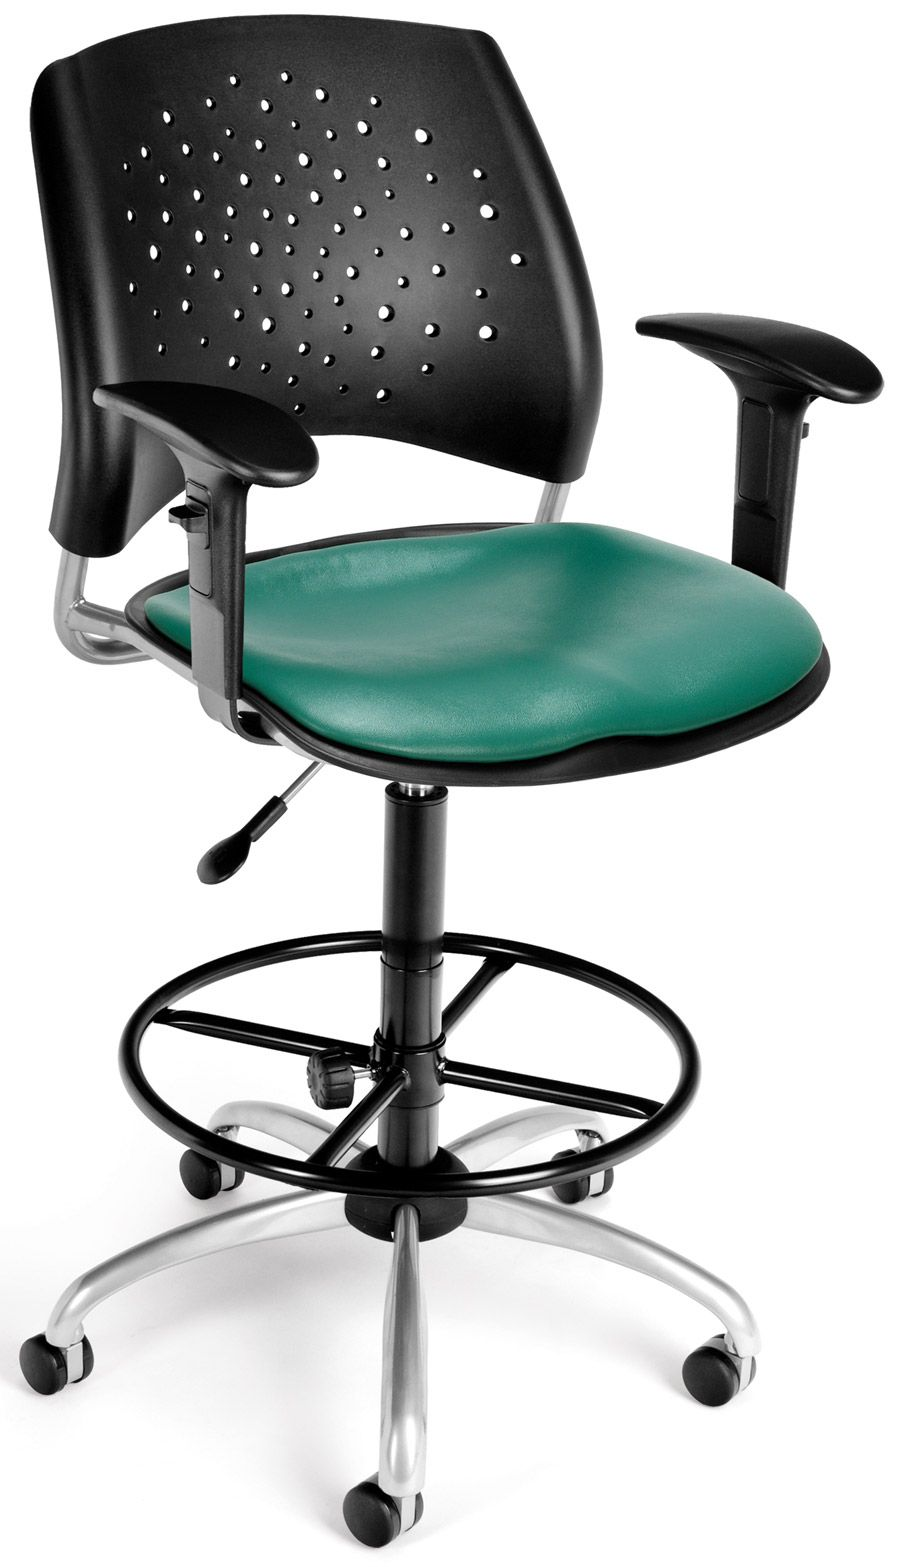 Vinyl Seat Star Swivel Drafting Chair With Arms And Drafting Kit Teal$273.99